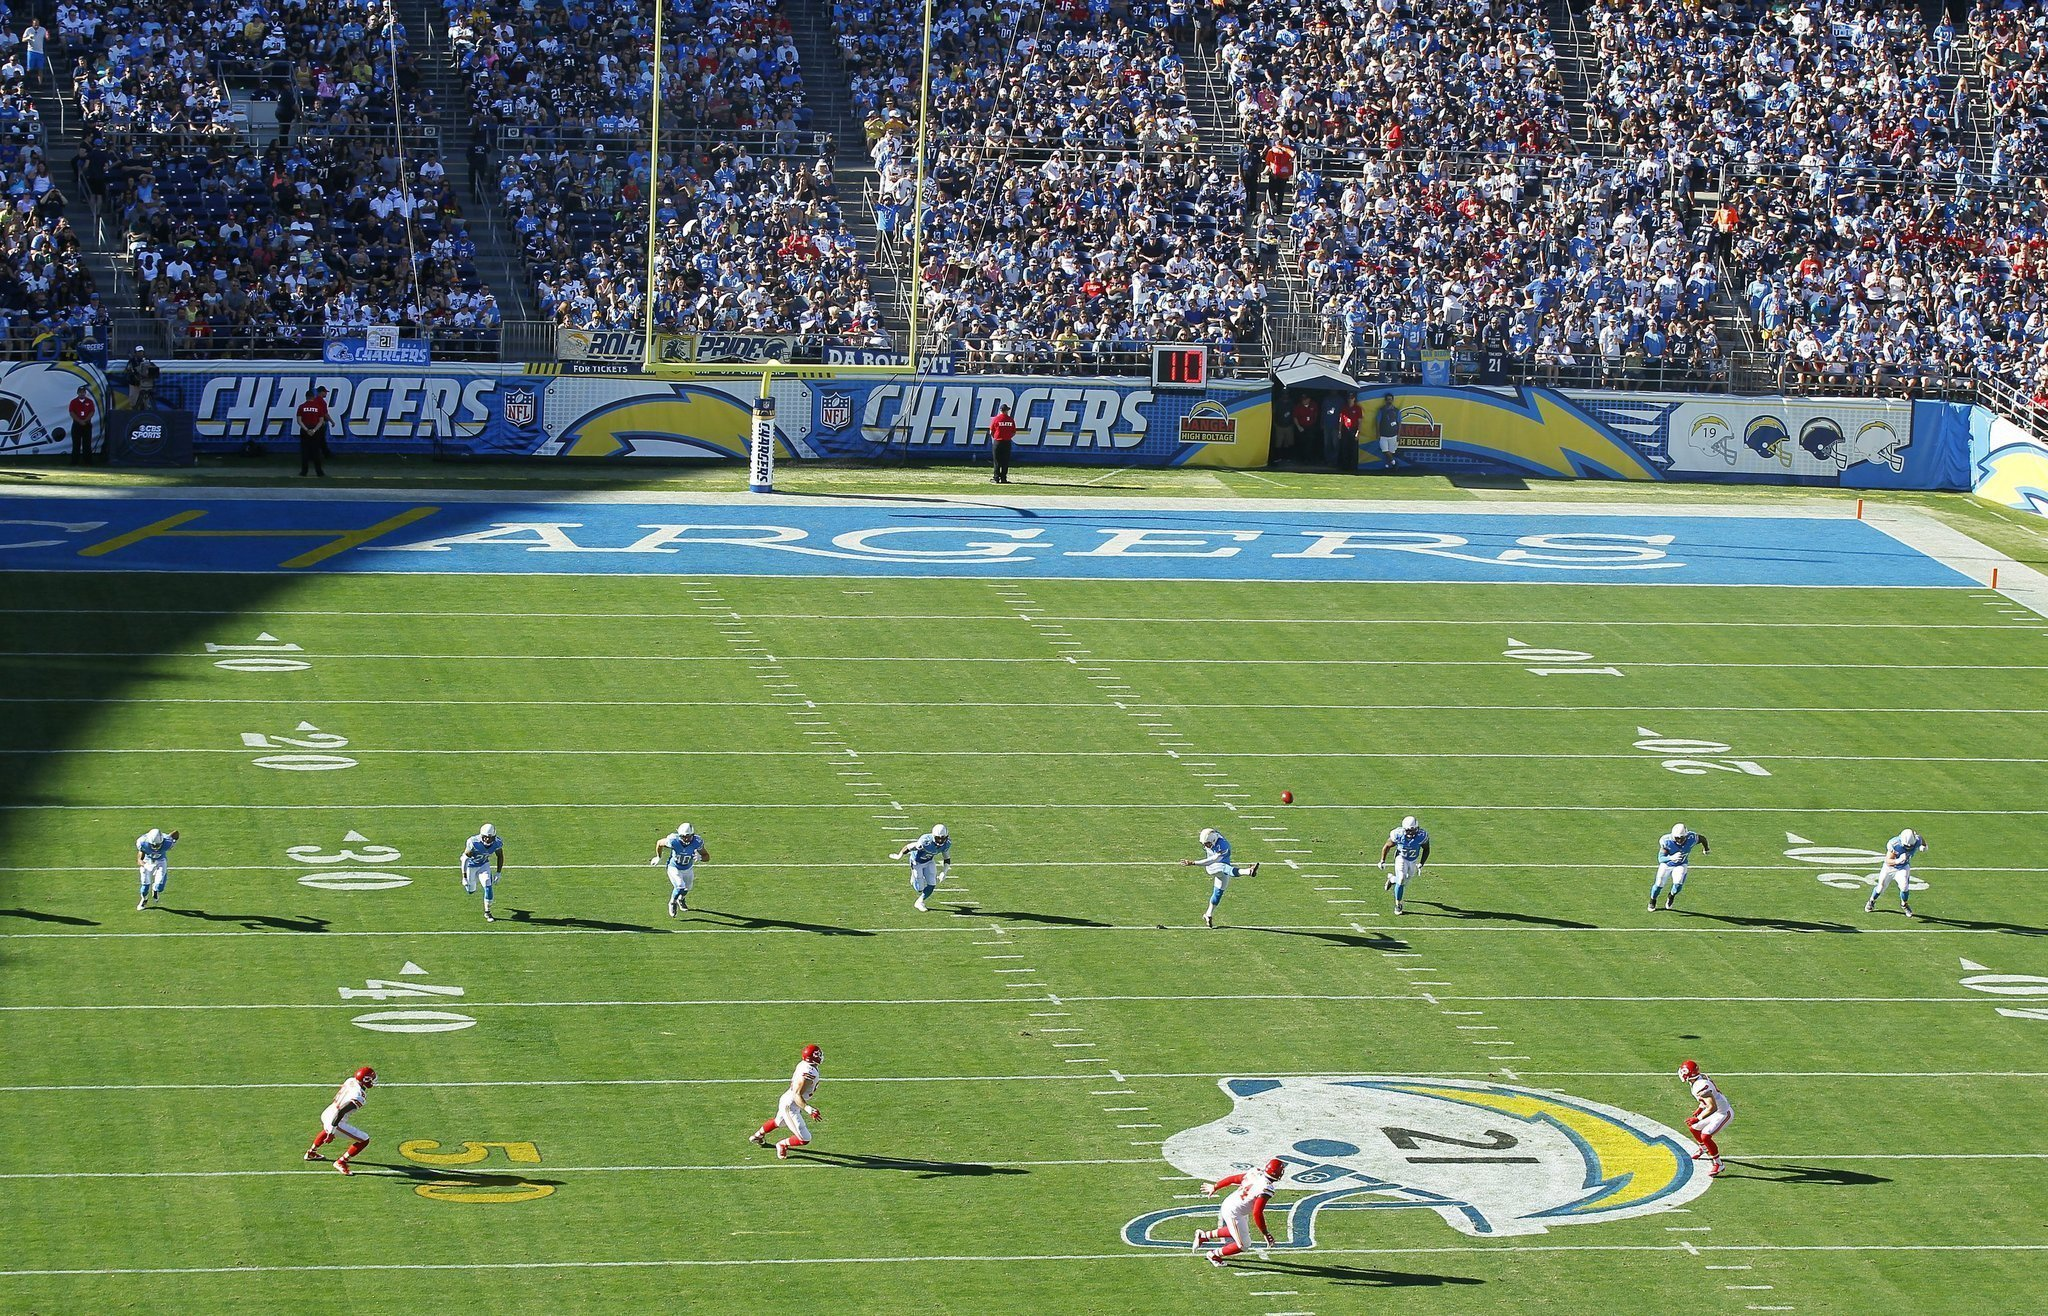 At Least Chargers Loss Was Special The San Diego Union